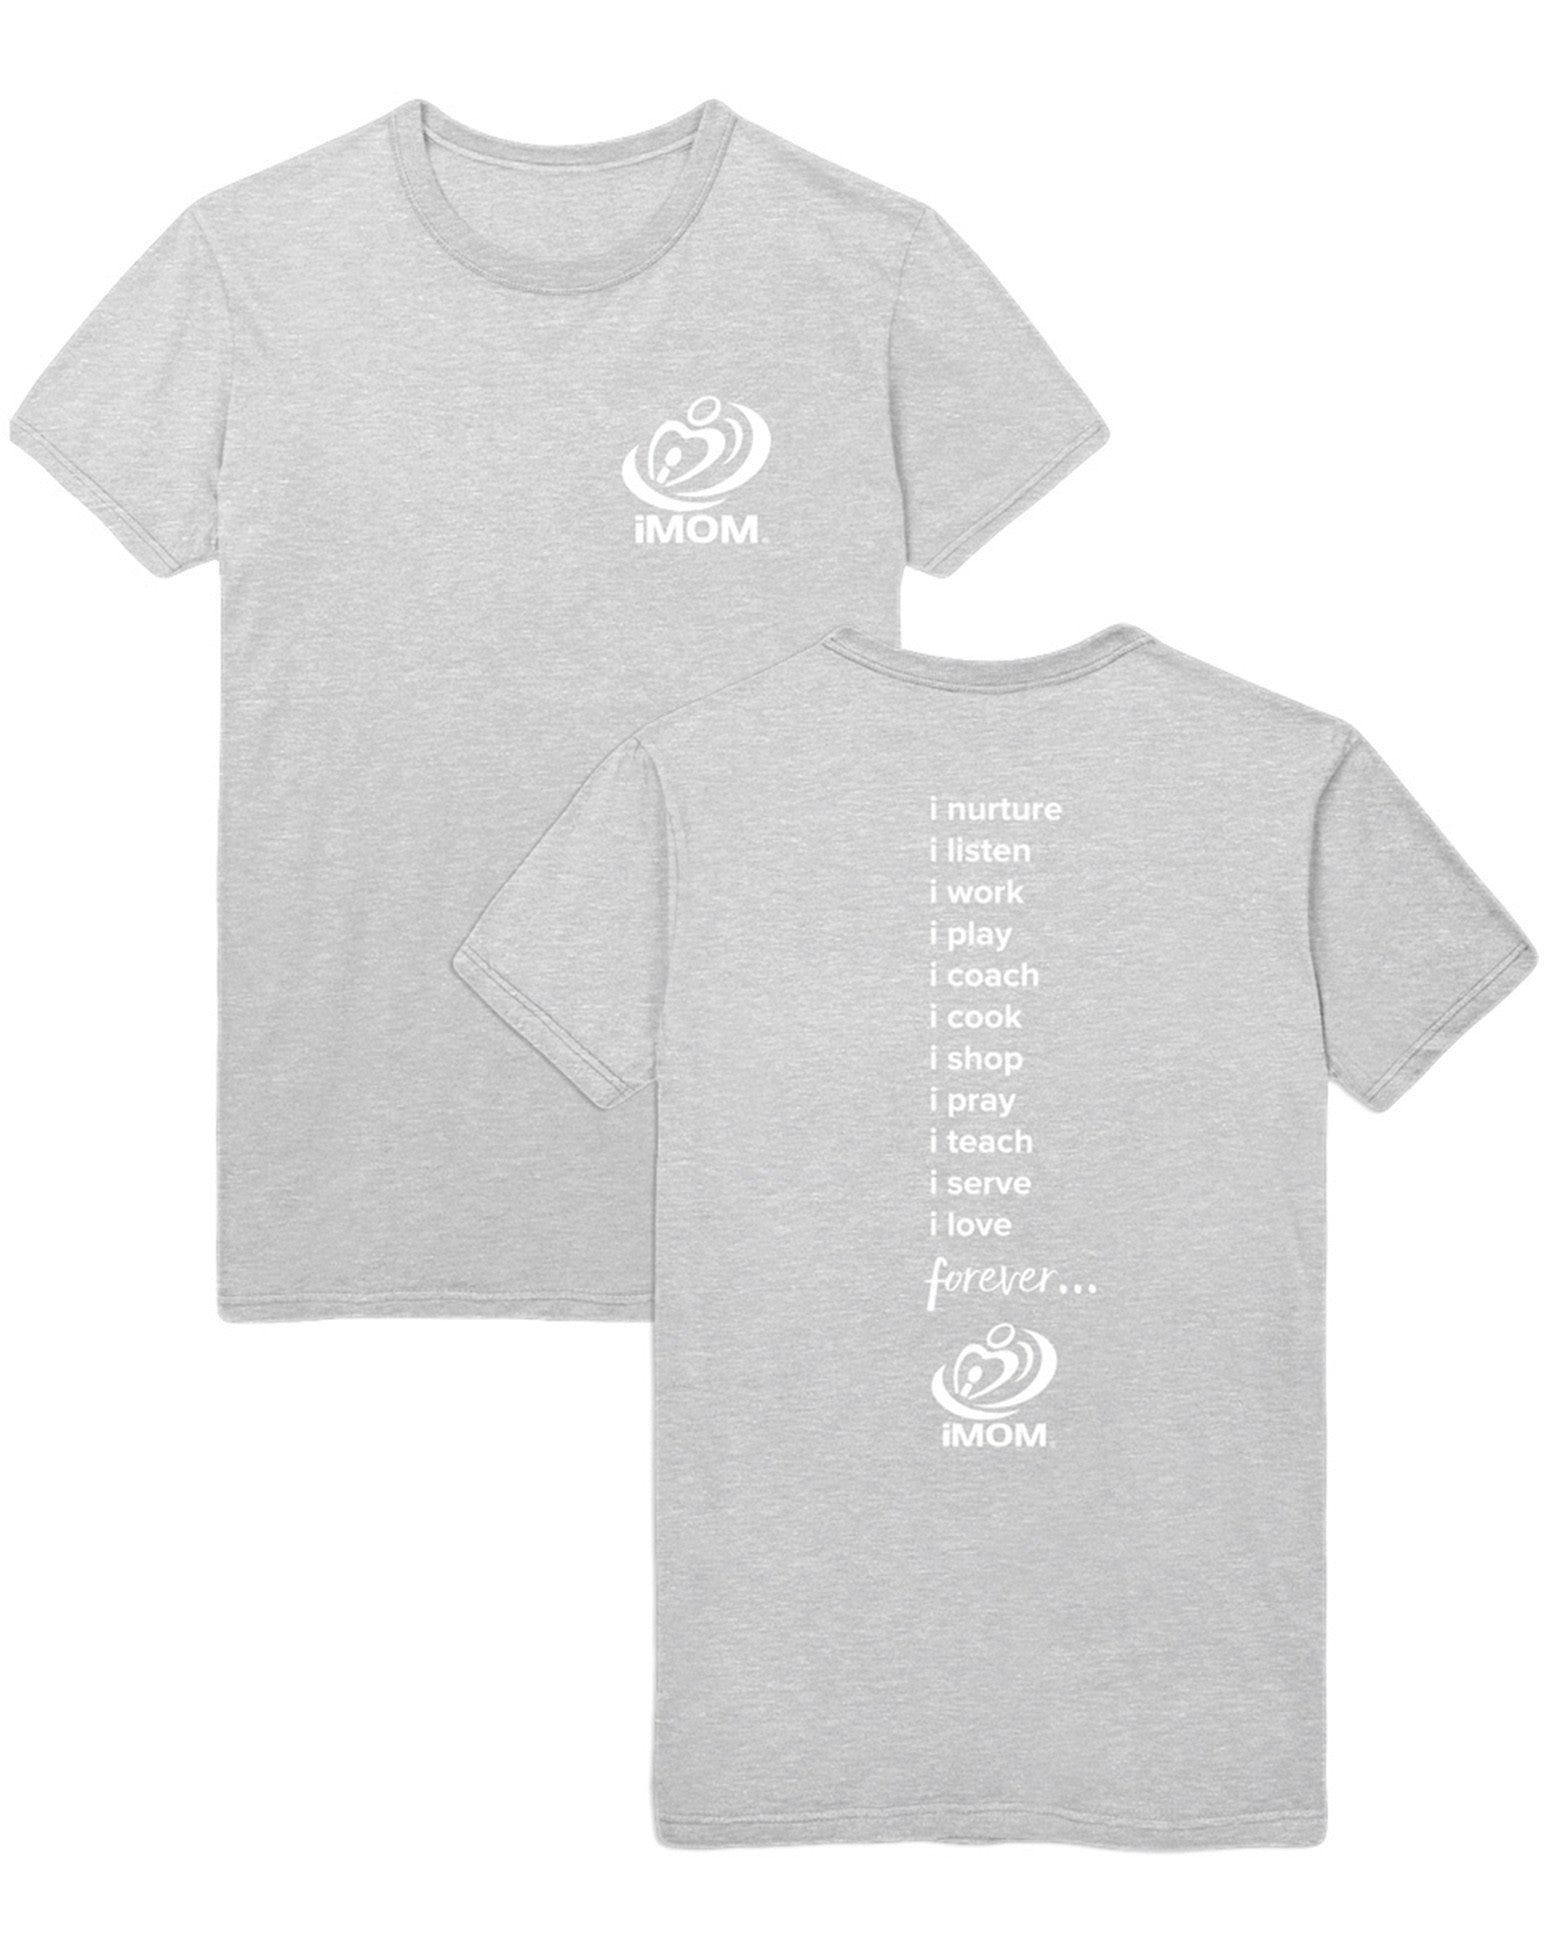 picture relating to Imom called iMOM 10 Methods T-Blouse (Grey)